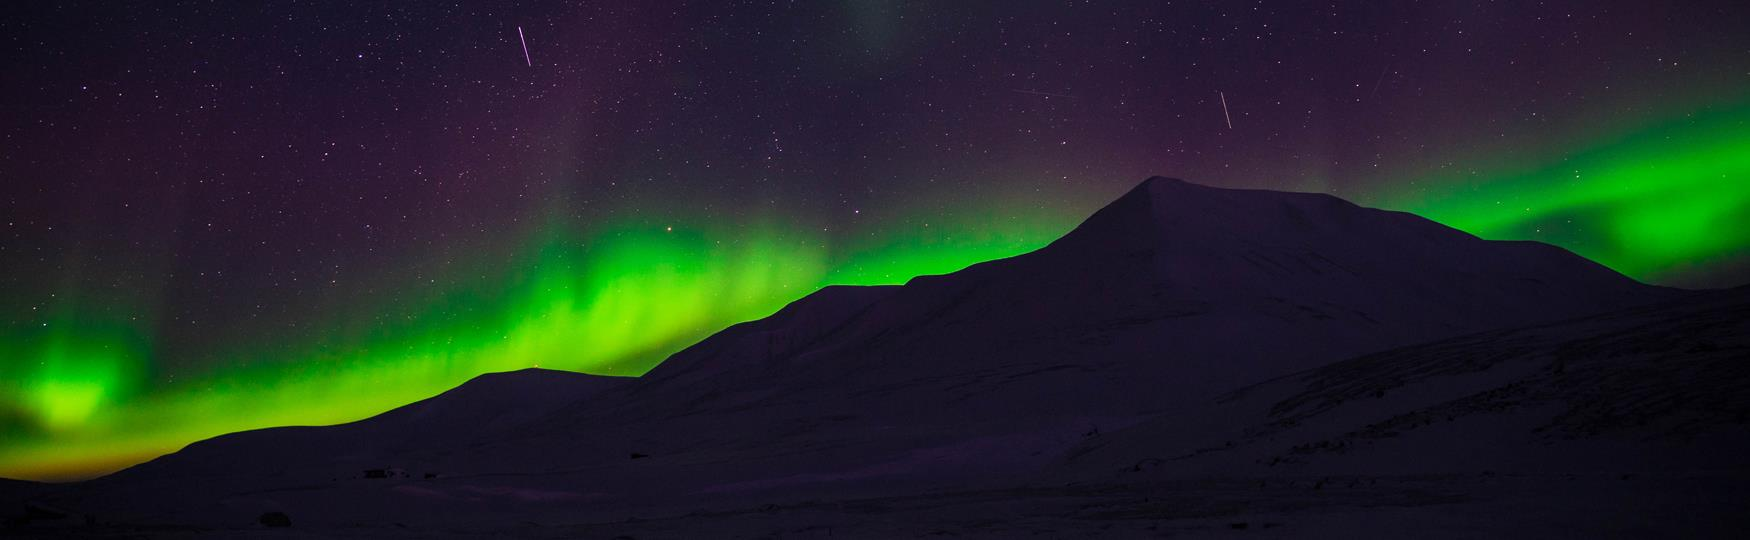 Explore the Northern Lights Winter